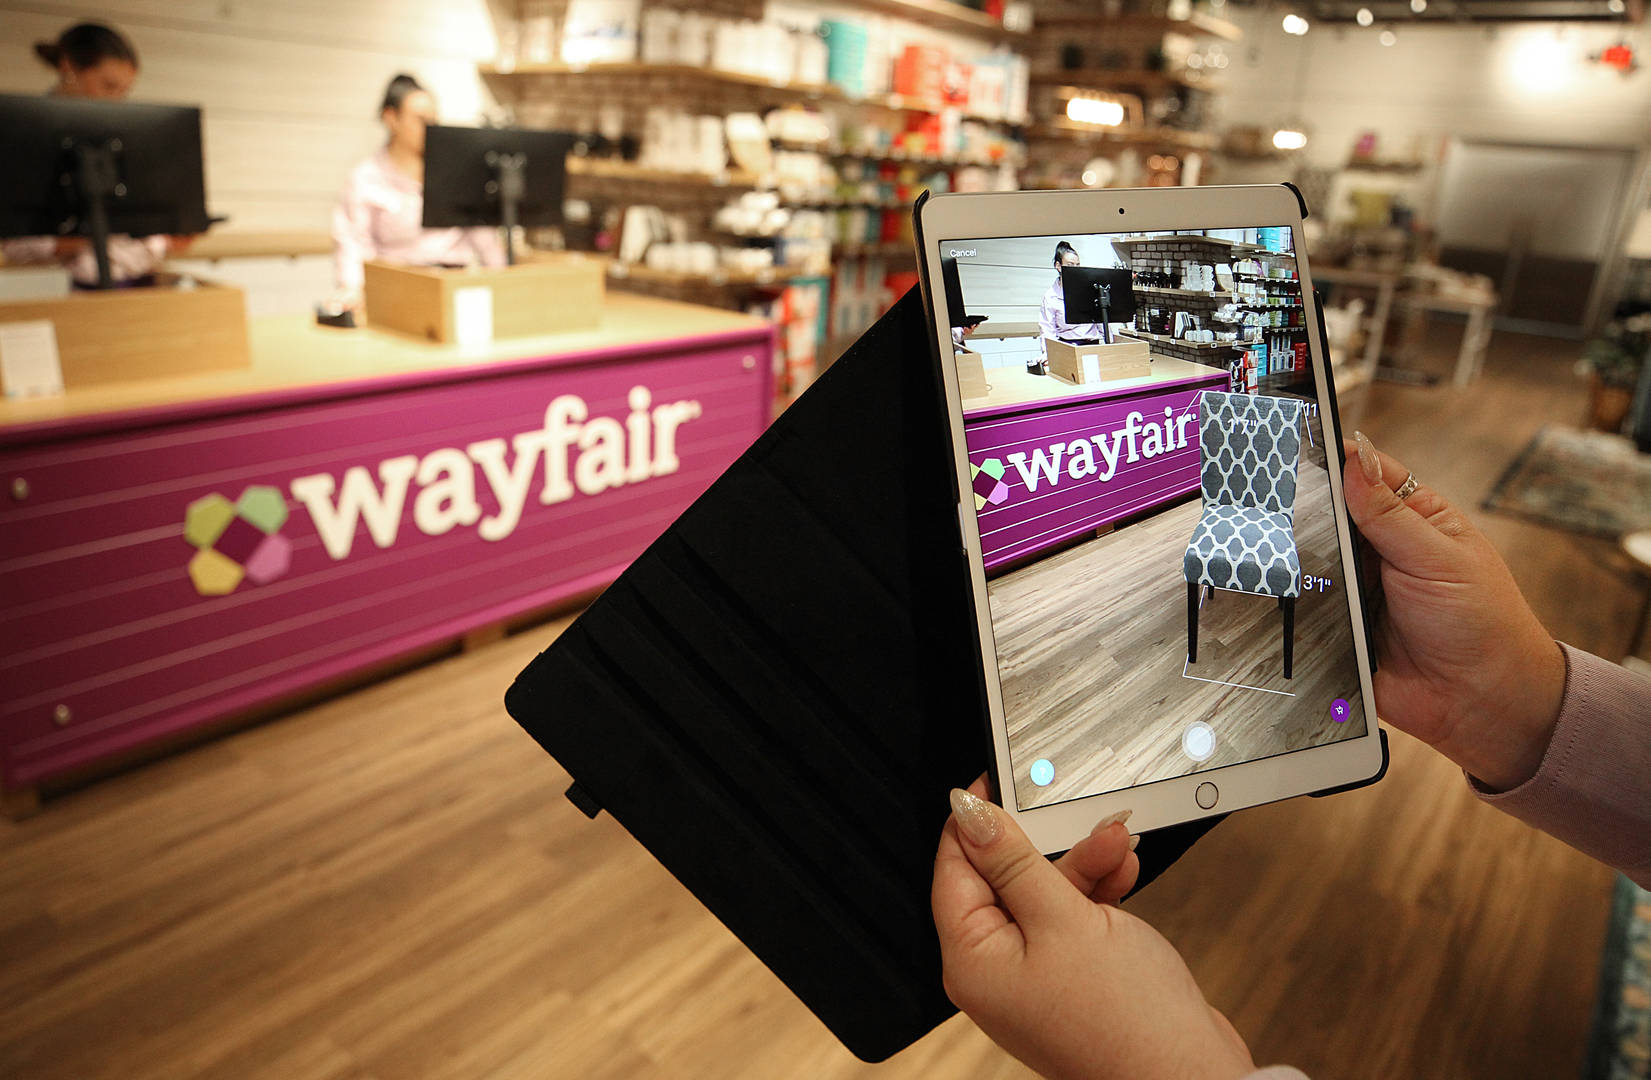 Wayfair: 'No Truth' to Child Sex Trafficking Claims